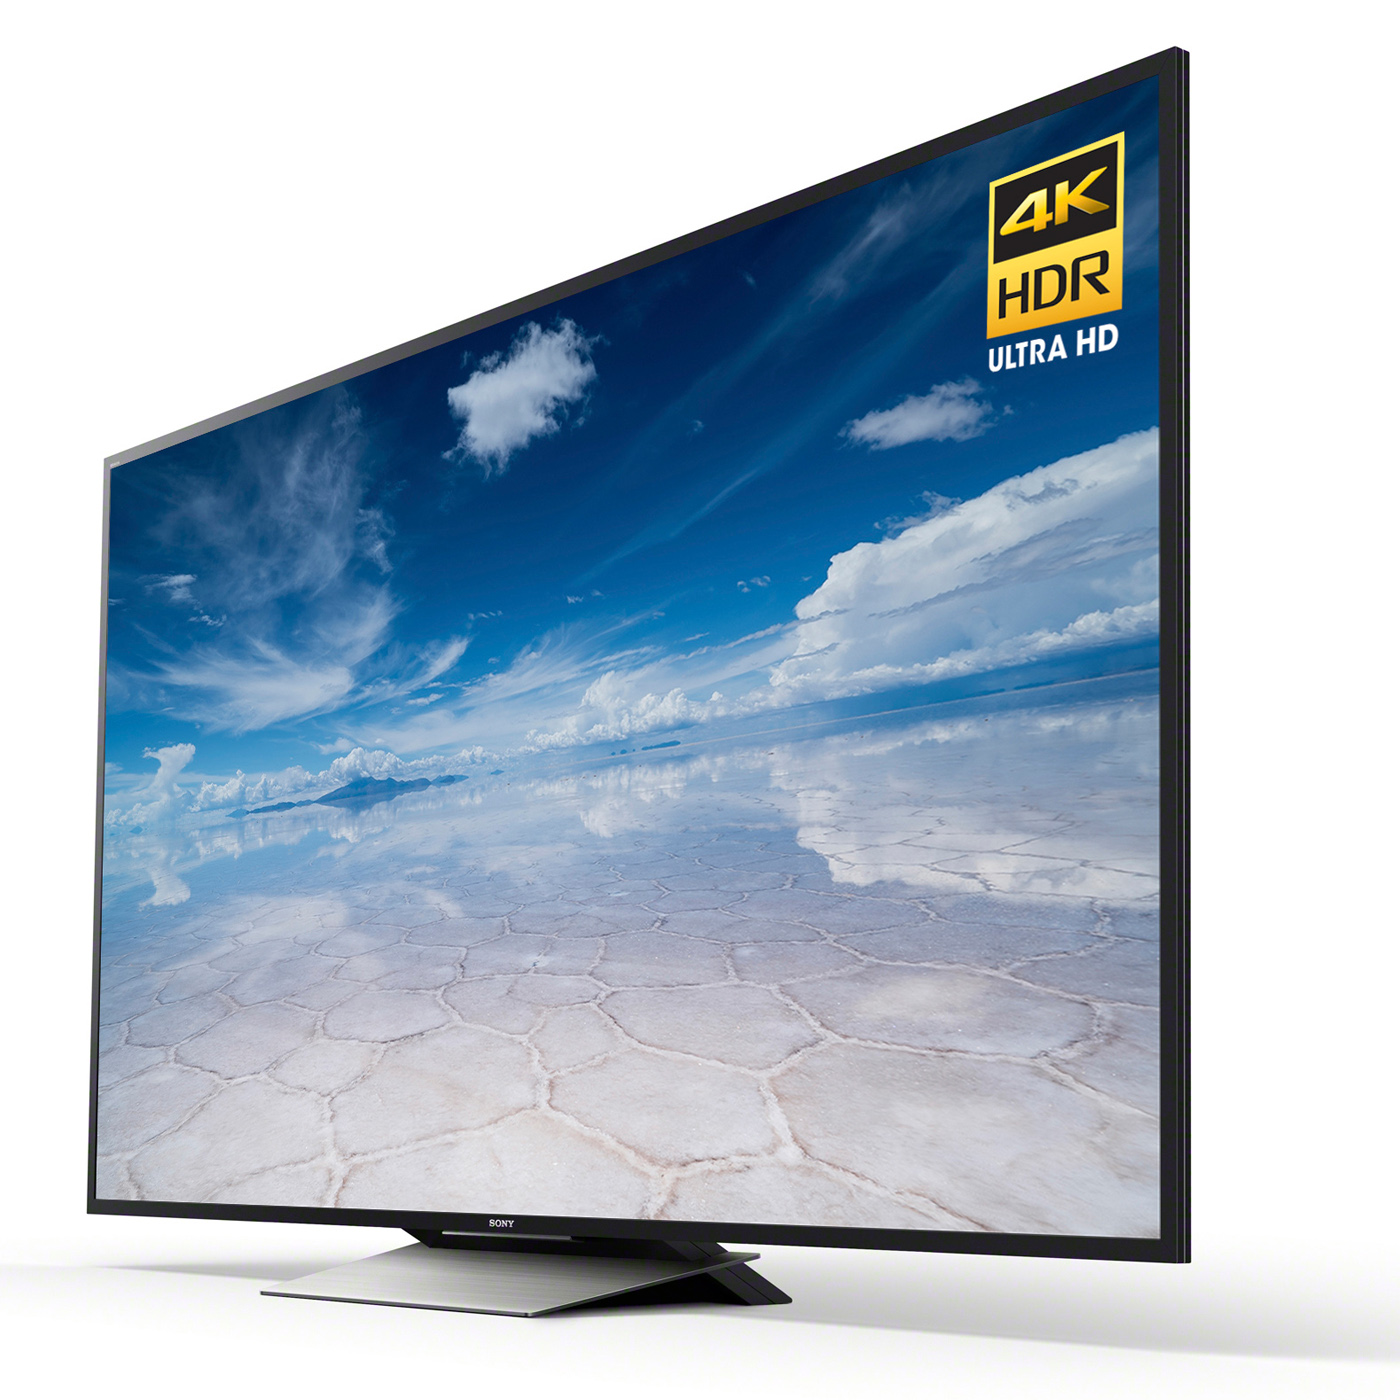 tv 85 inch. sony xbr-85x850d 85-inch 4k hdr ultra hd tv image 4 of tv 85 inch e